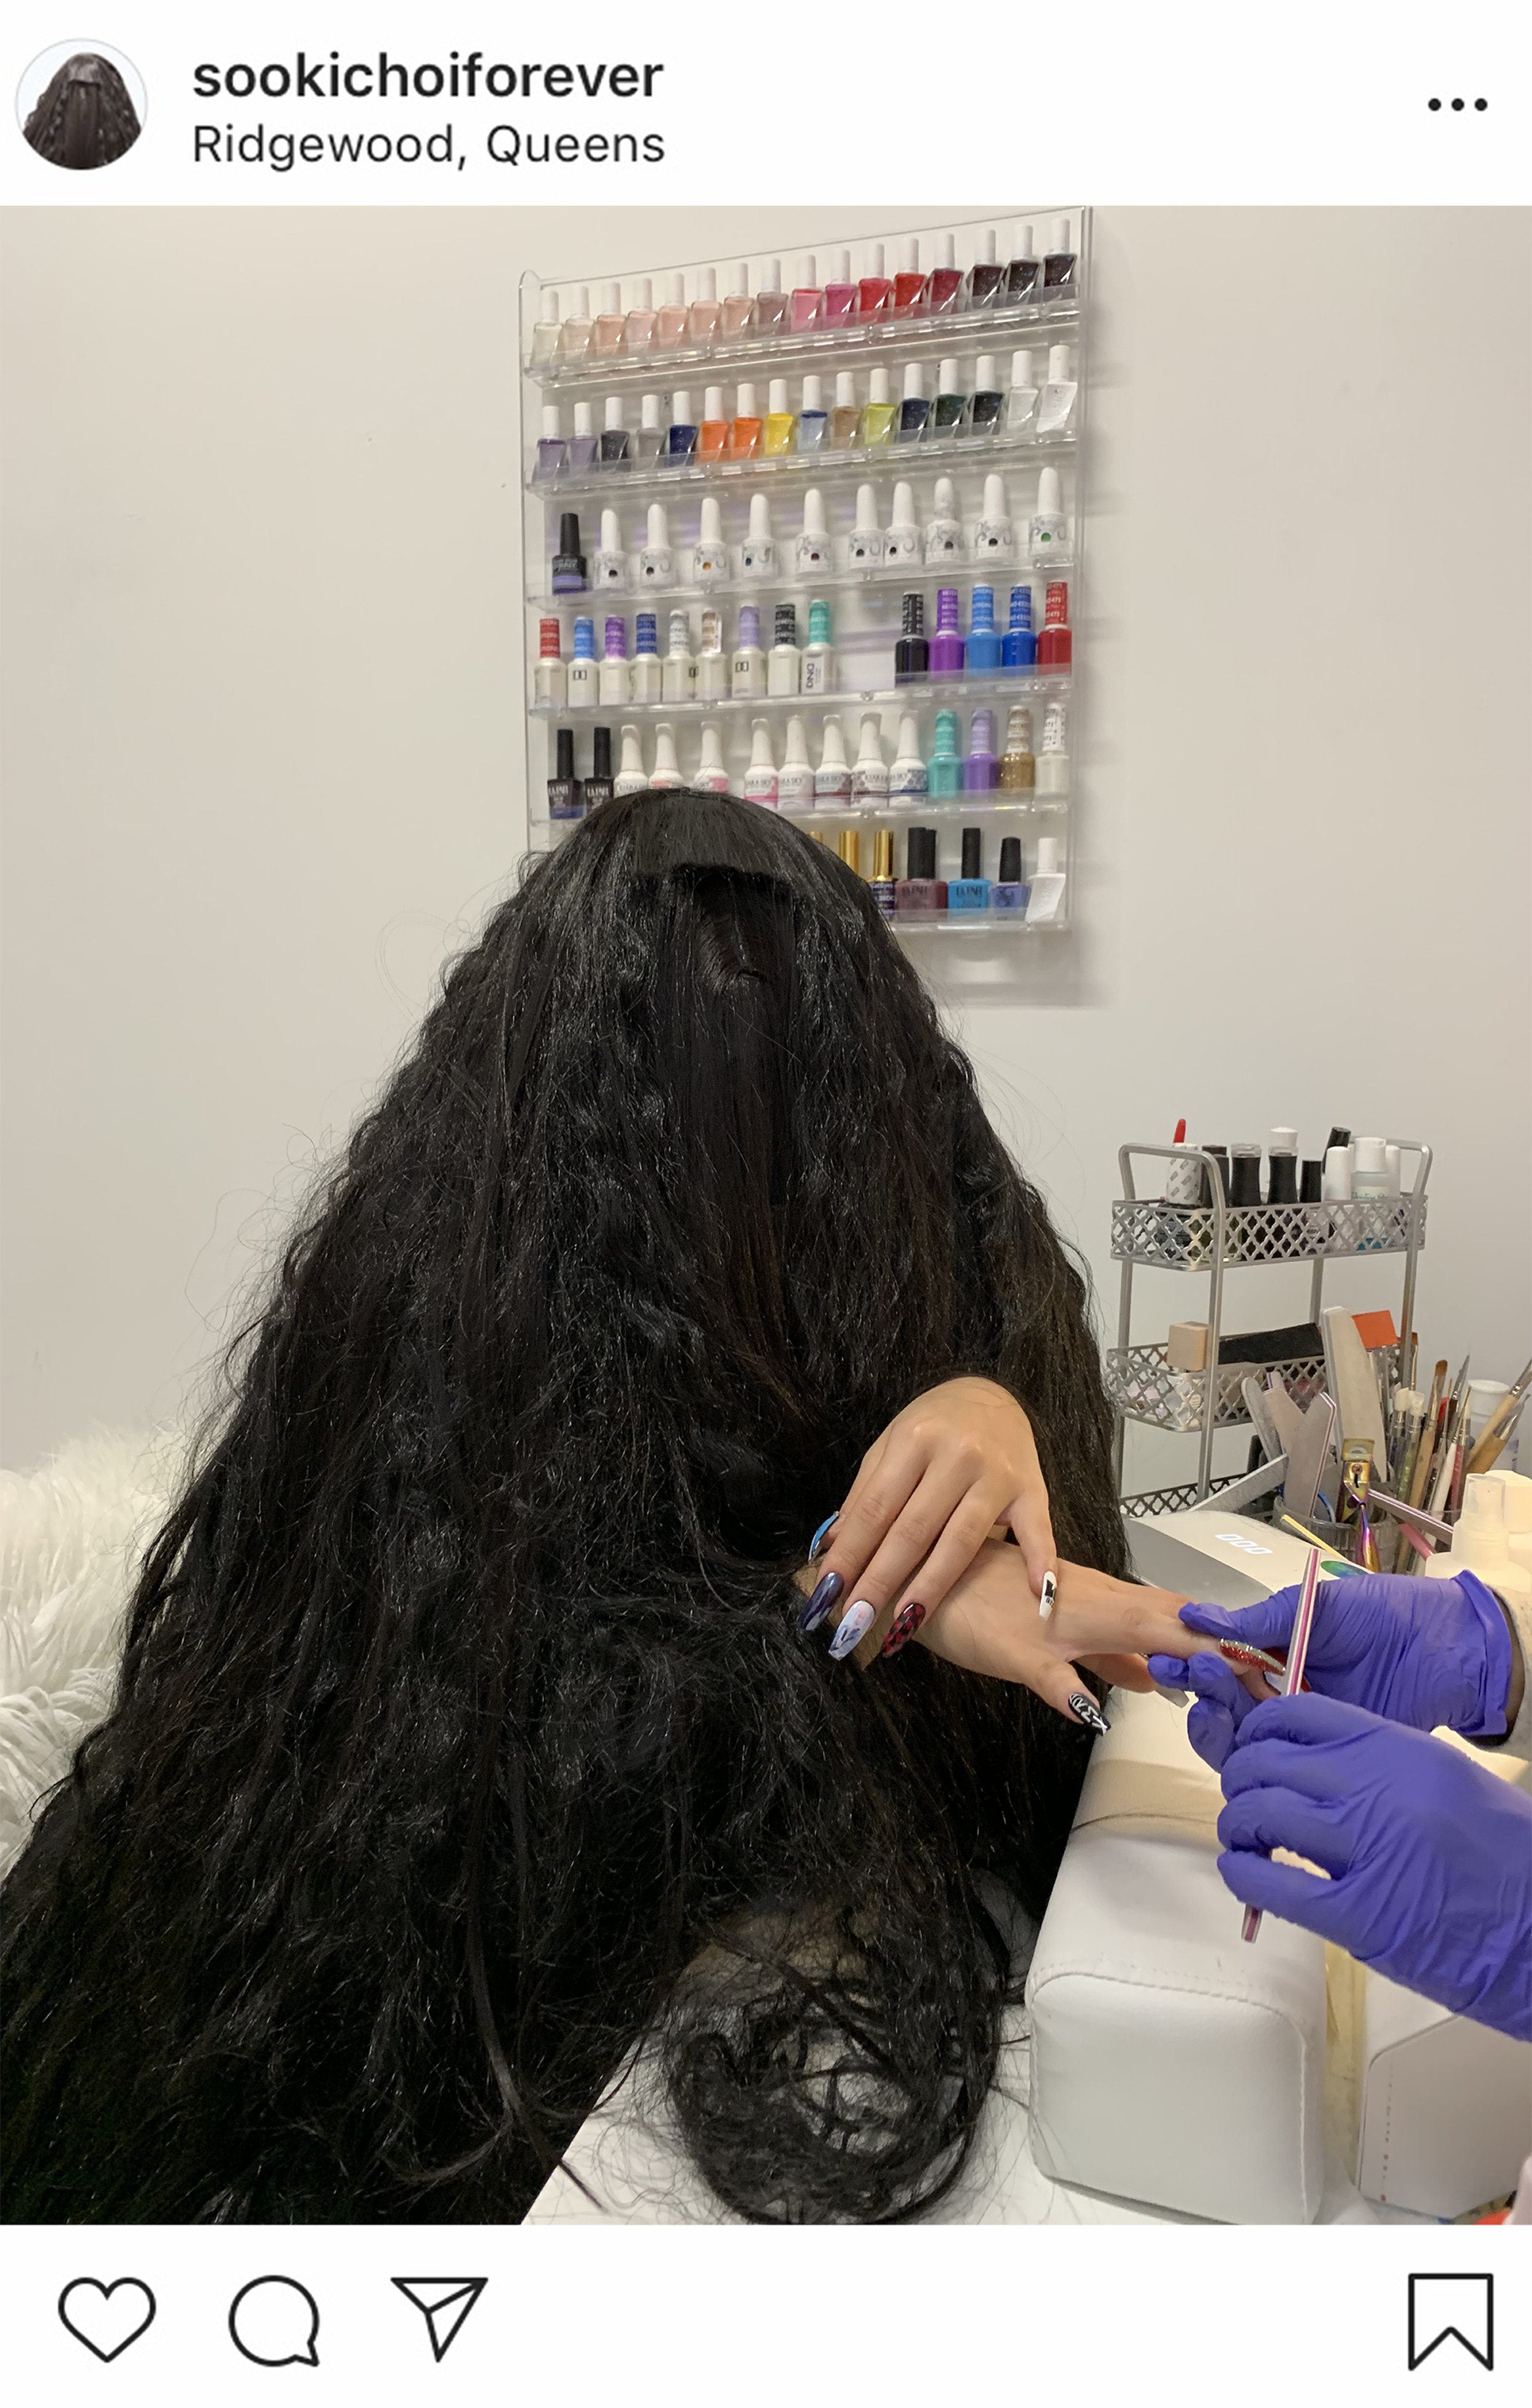 As a nail enthusiast, Sooki likes to get her nails done and share them with her followers. Sooki is always cognizant of the latest trends and cultural phenomenons. In this photograph, she is getting her nails done in a private salon, with pictures of the Korean band BTS imprinted on them.